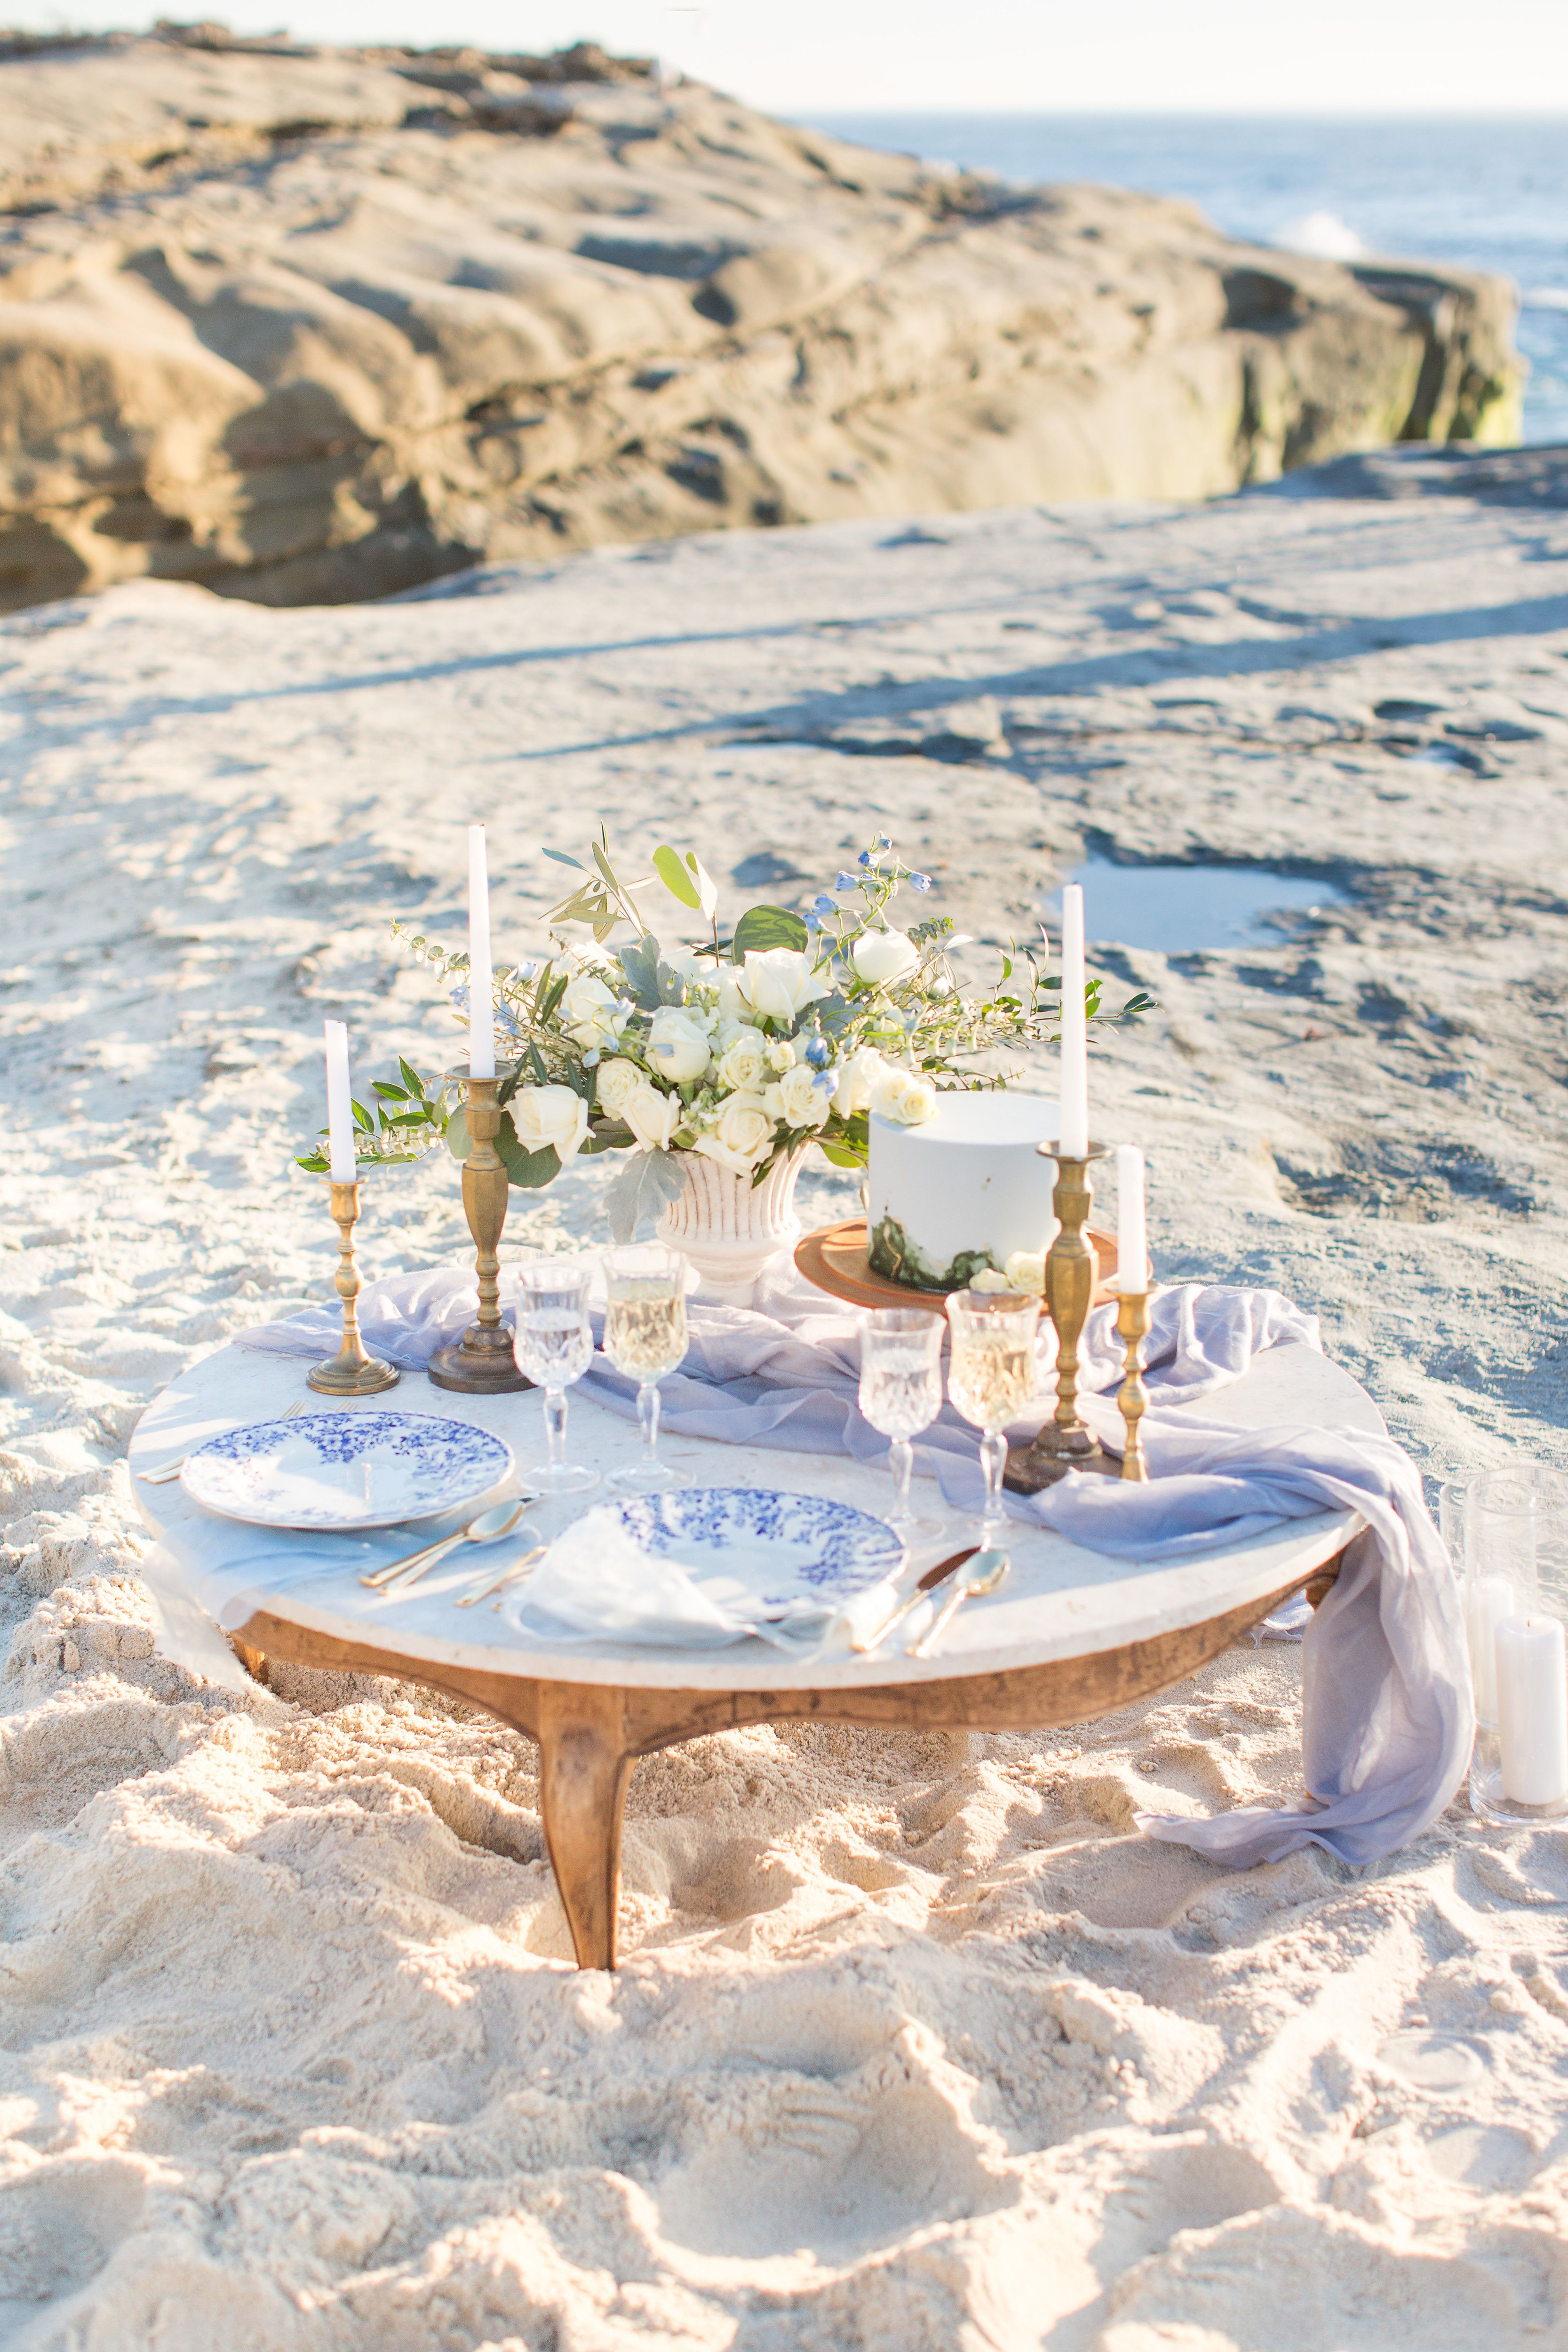 Most Romantic Picnic Sweetheart Table For A Beach Elopement